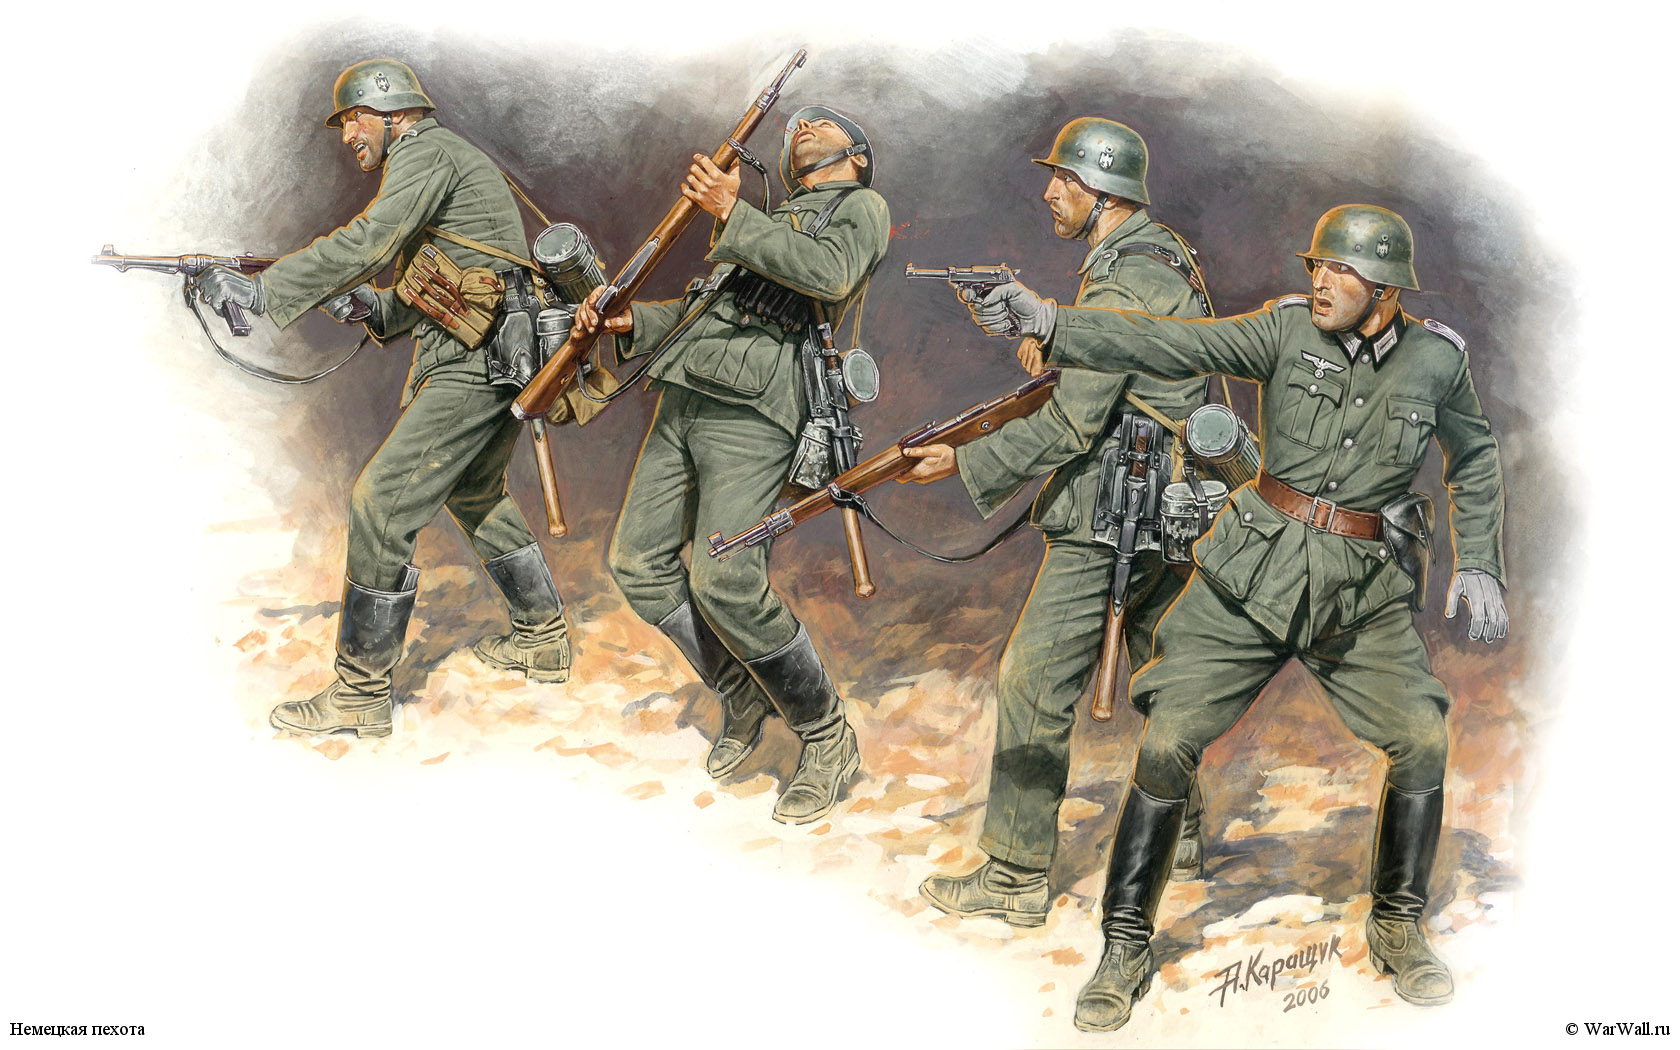 http://warwall.ru/Art/Wallpaper_2269_Master_Box_3522_German_Infantry.jpg